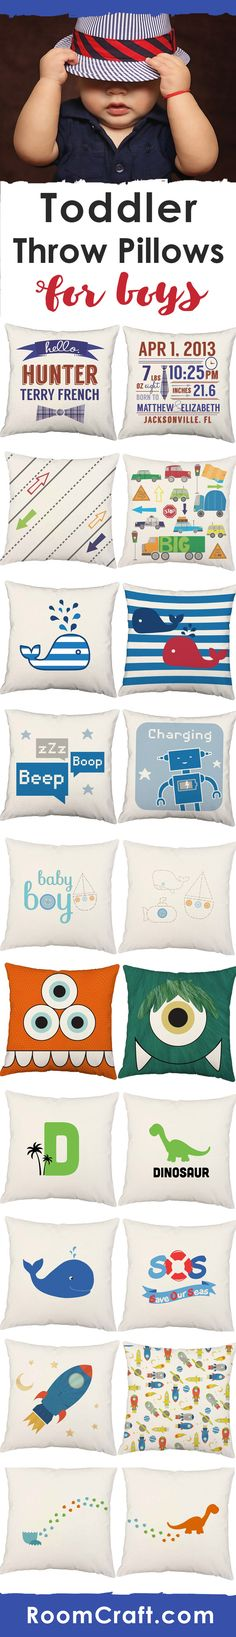 These toddler throw pillows will inspire any little boy's dreams. Whether he loves cars and trucks or dinosaurs are his favorite, you are sure to find one perfect for his toddler room. Our kids pillows feature 3 wooden buttons on the back for closure and the removable pillow covers are made to order in the USA. They make decorating fun and easy. Save to your board for later! #roomcraft